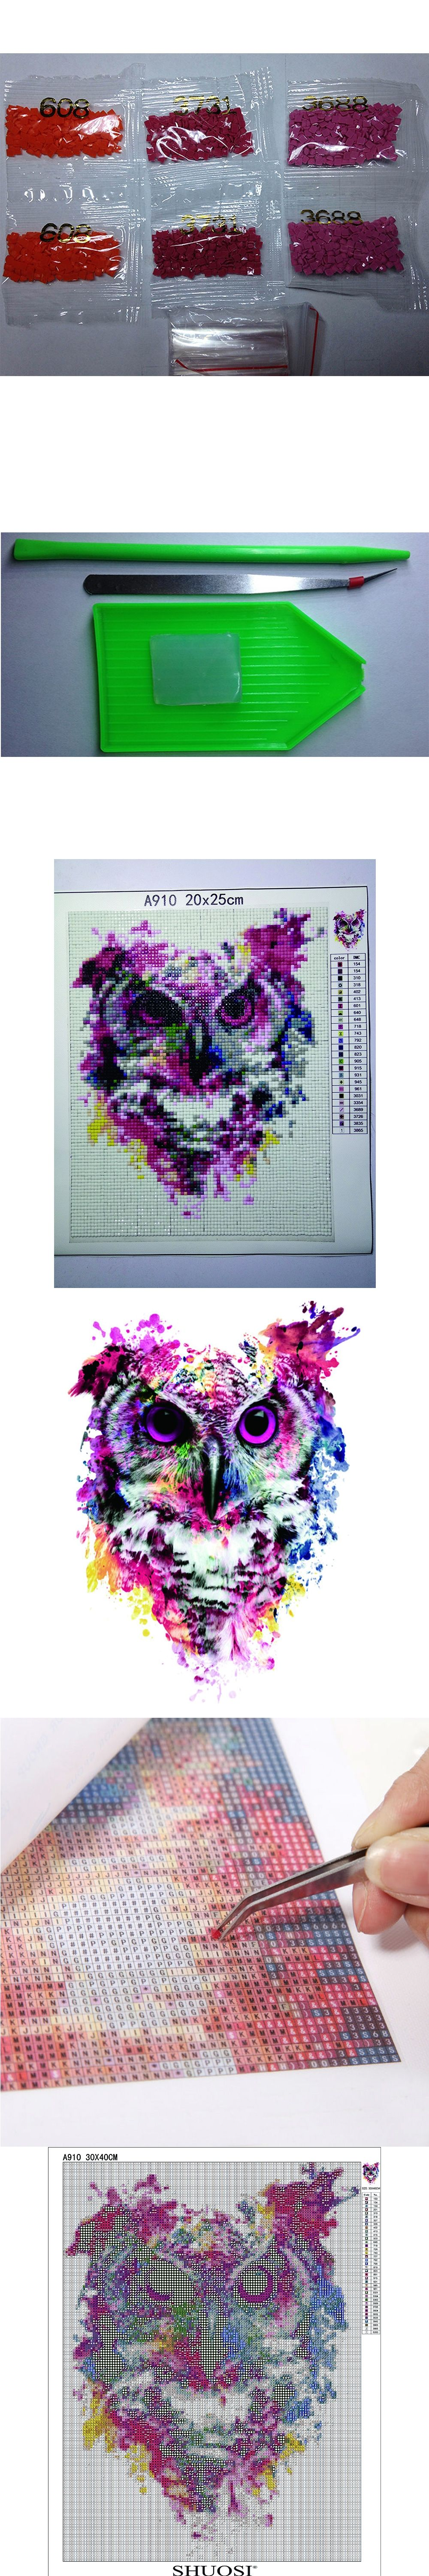 on mosaic diamond item of full mother com painting art pictures diy diamonds aliexpress stitch from in kits cross kids embroidery underwear